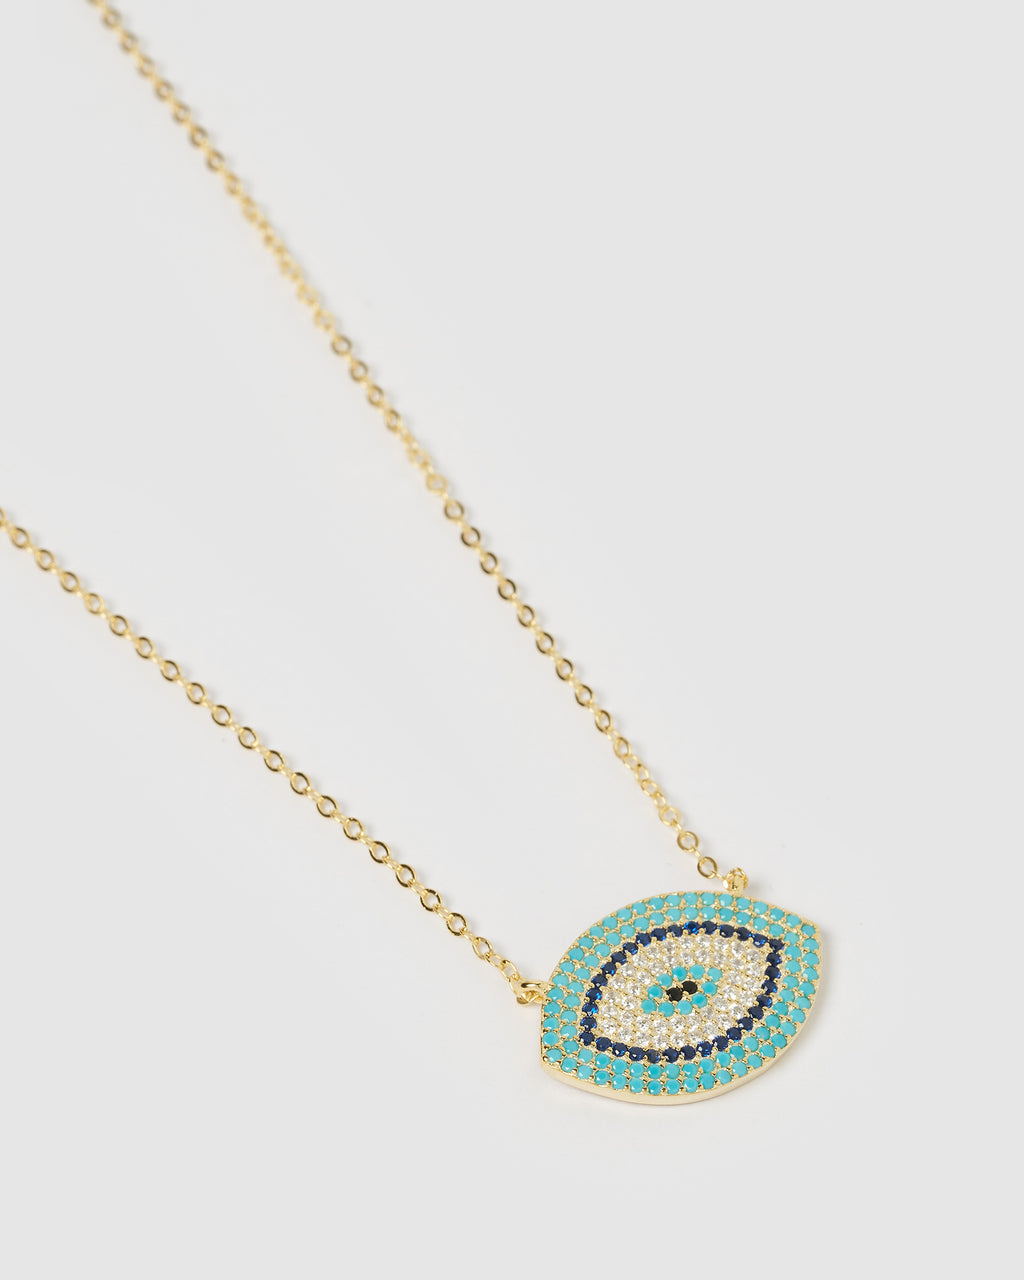 Izoa Sansa Embellished Evil Eye Necklace Gold